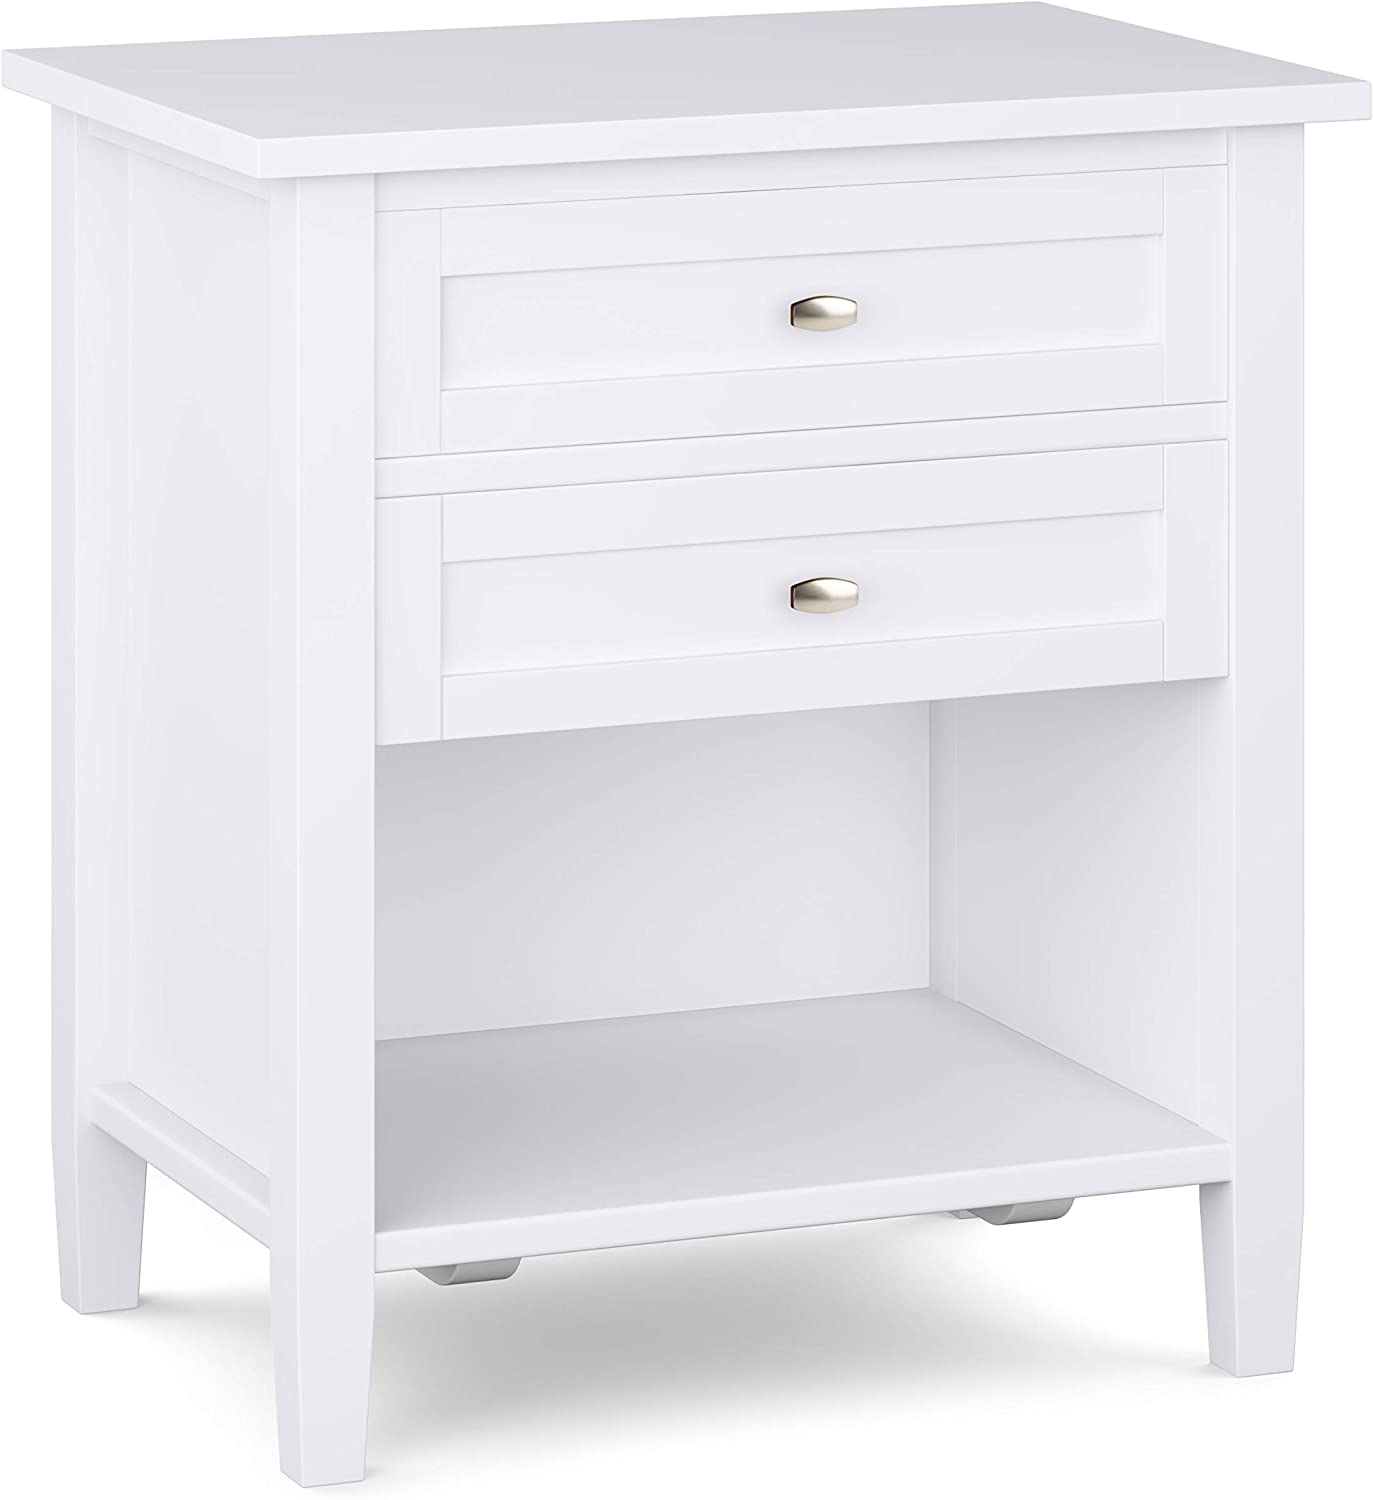 SIMPLIHOME Warm Shaker SOLID WOOD 24 inch Wide Rustic Bedside Nightstand Table in White